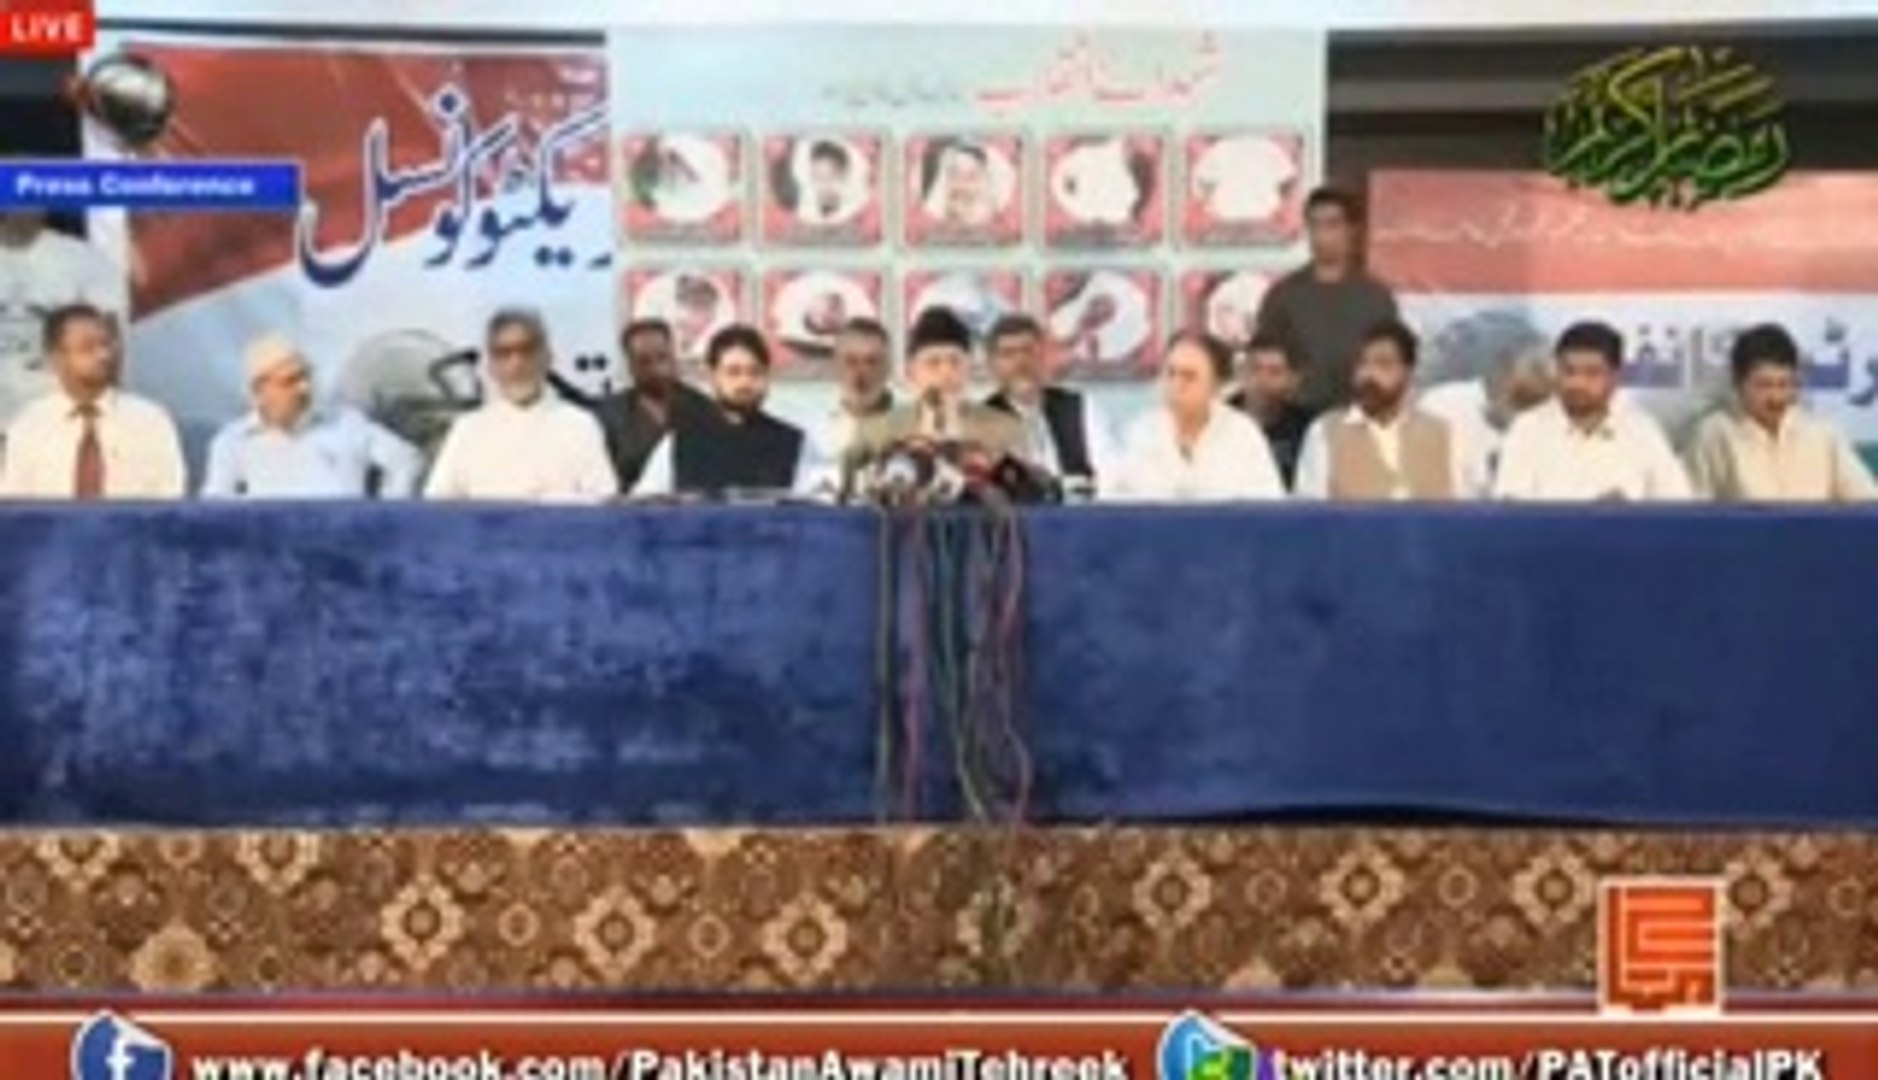 Doctor Tahir Ul Qadri Condemning Latest Israel Air Strikes 10 July 2014